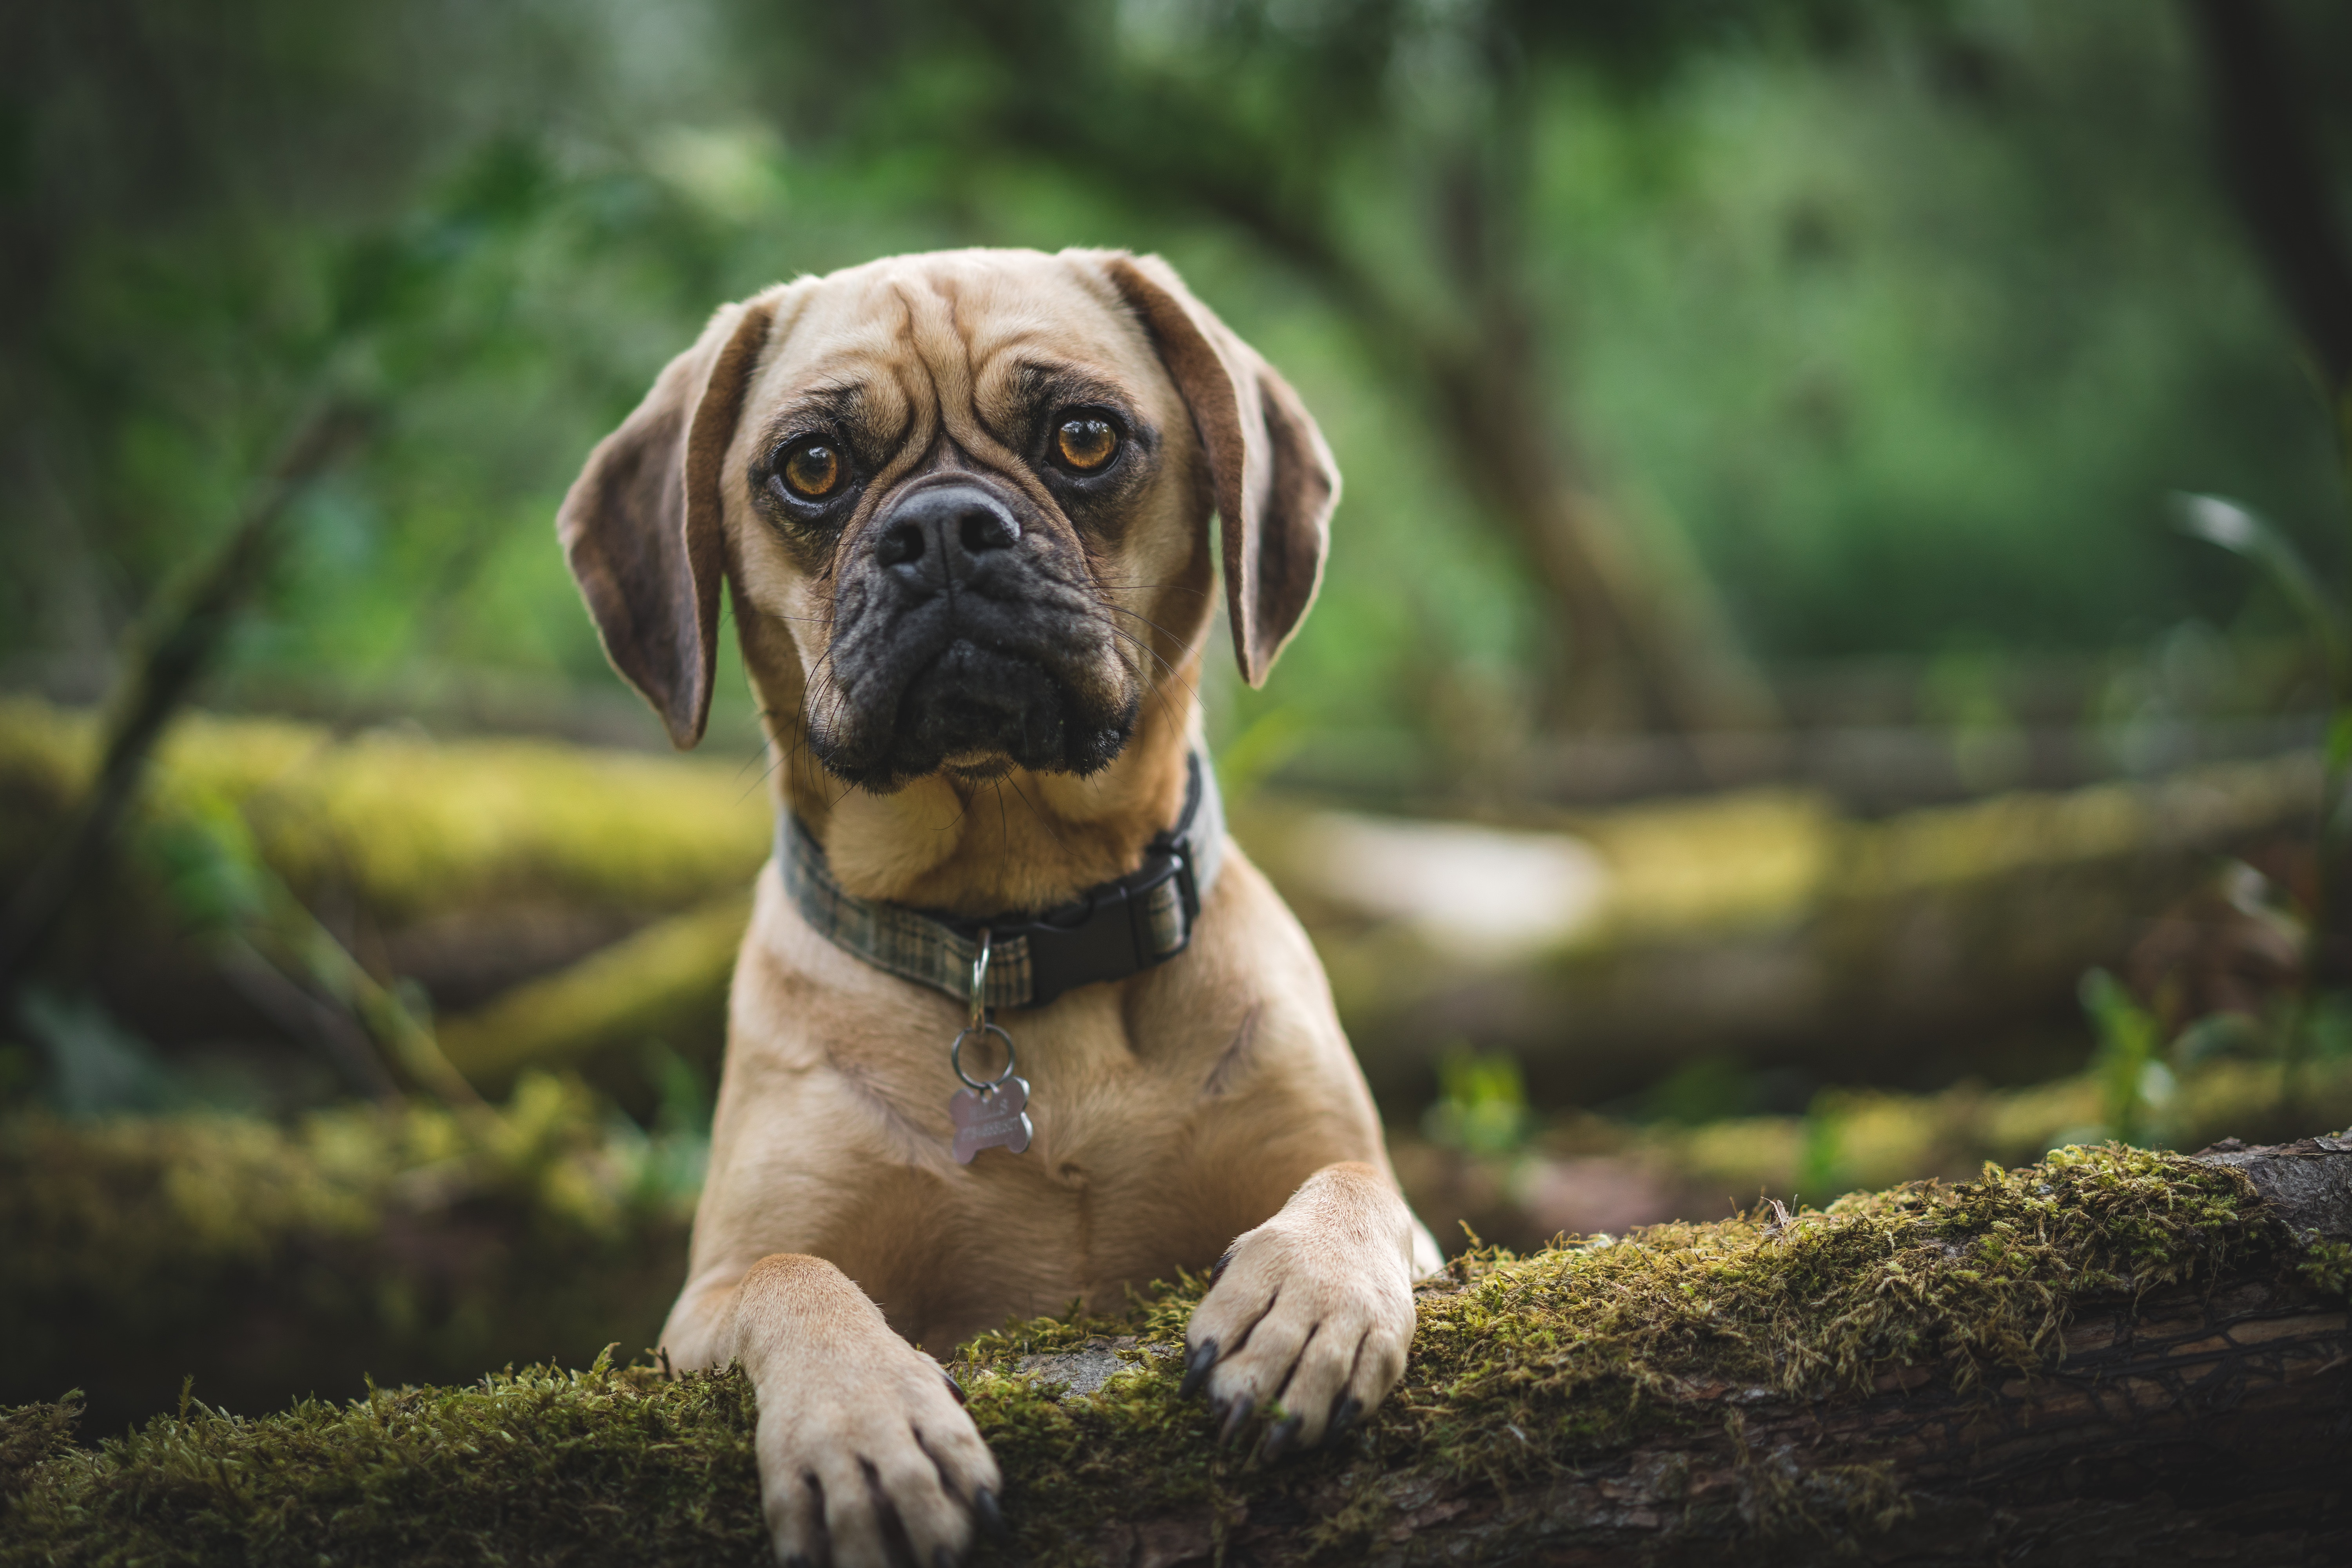 73269 download wallpaper Animals, Pug, Dog, Pet, Sight, Opinion, Sad screensavers and pictures for free